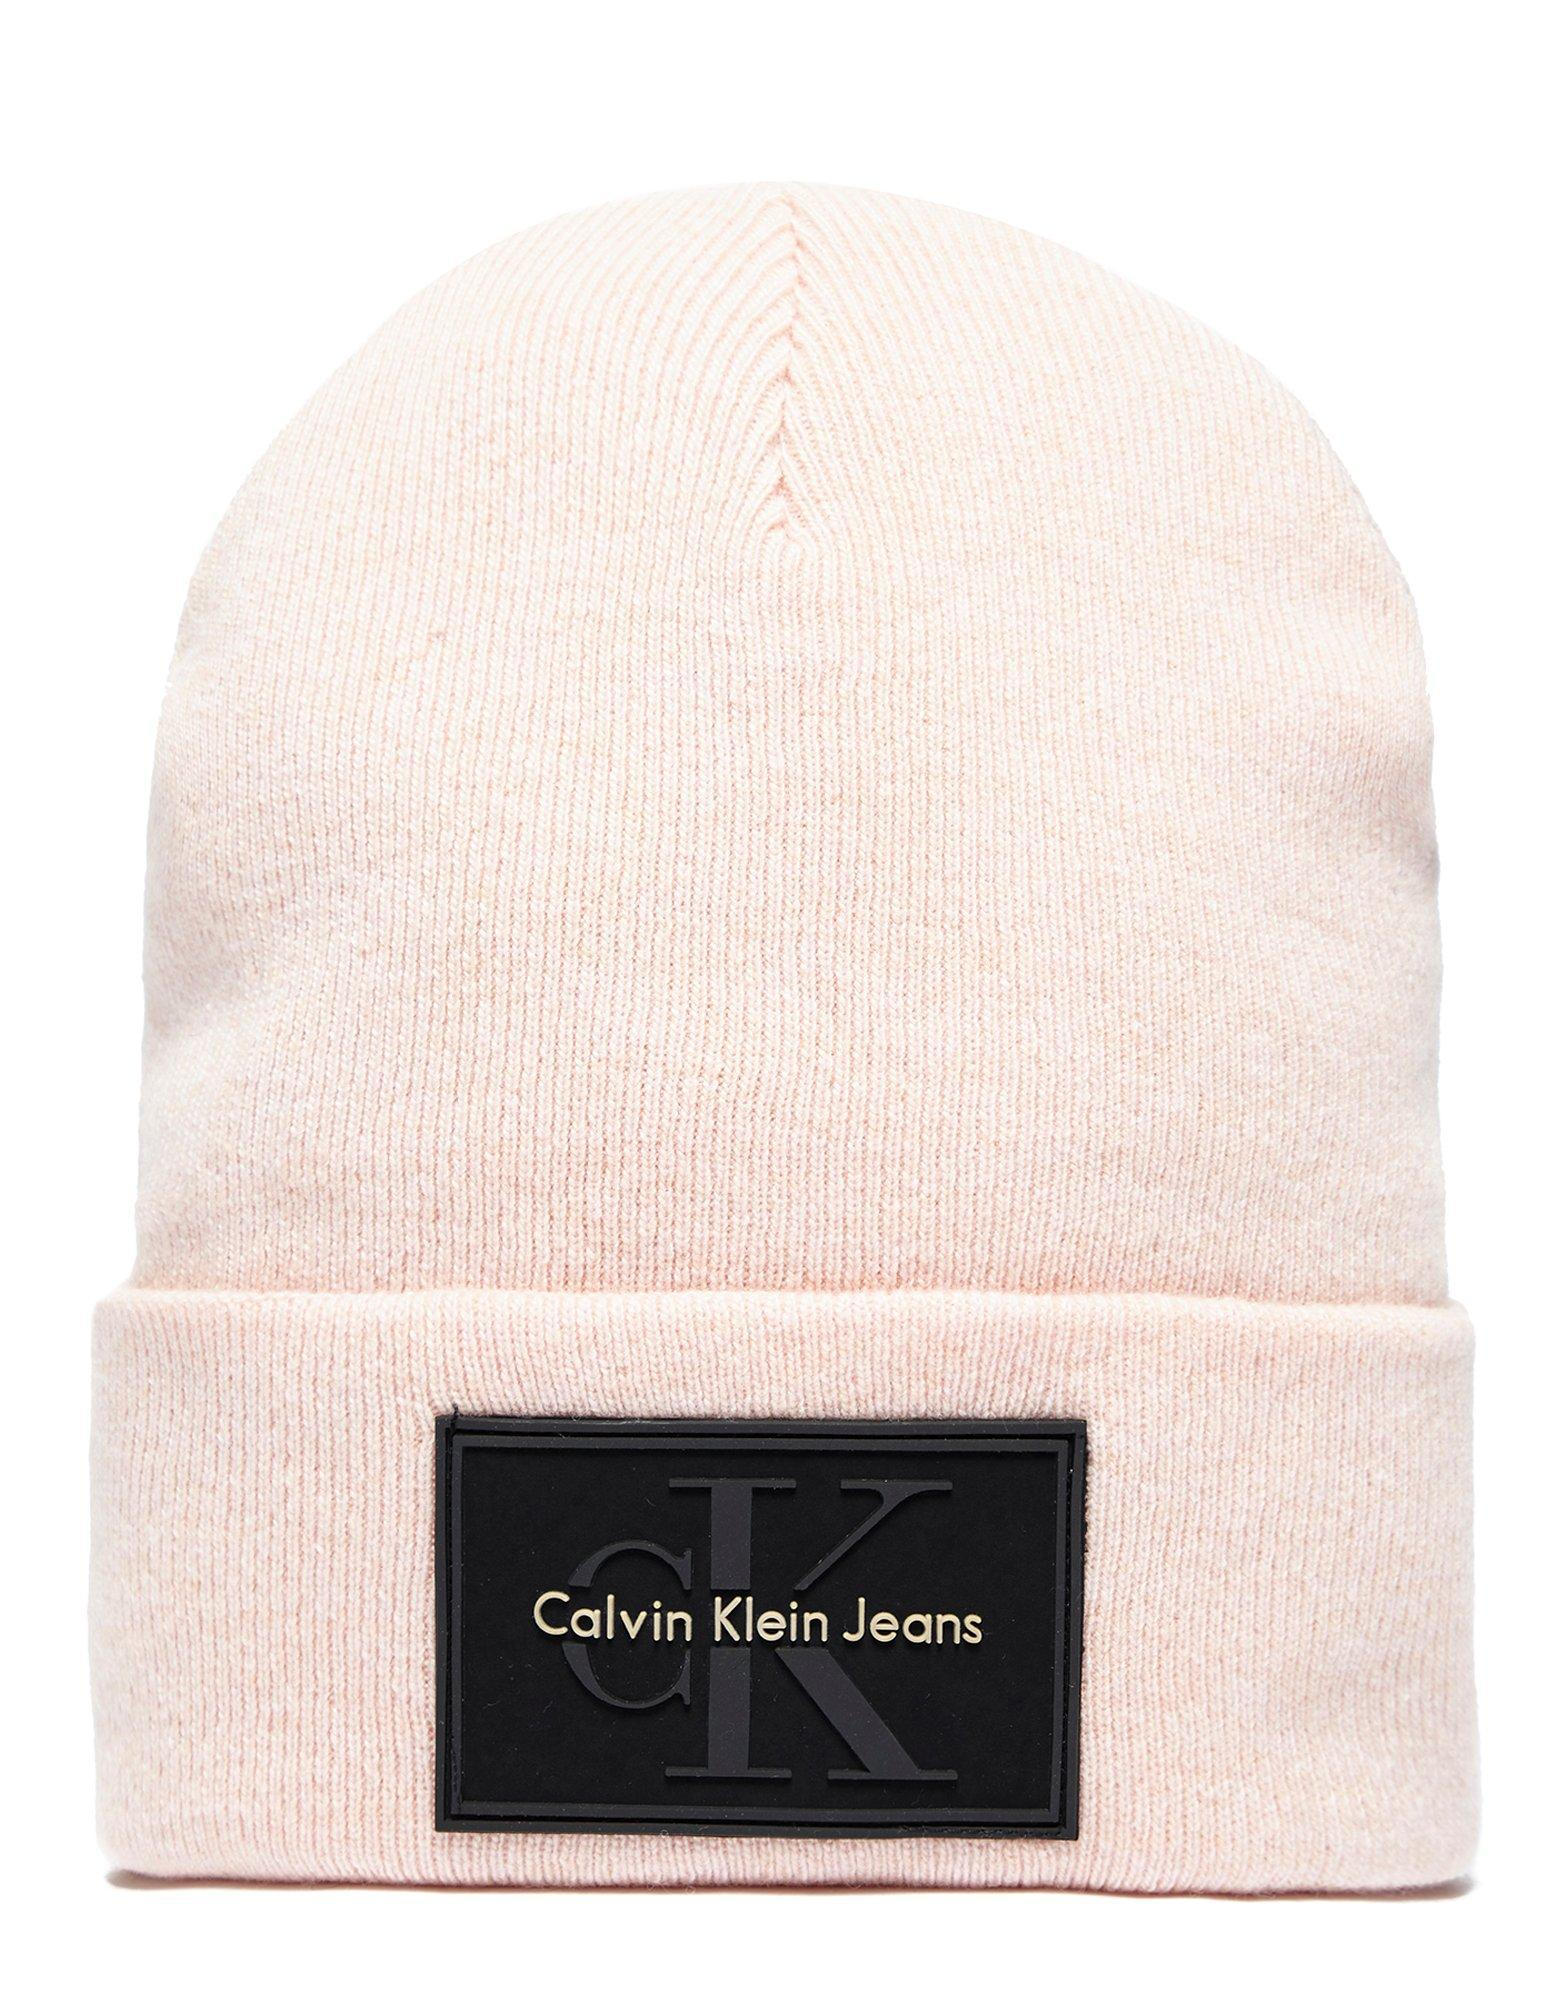 Lyst - Calvin Klein Re-issue Beanie in Pink for Men f241d6719a